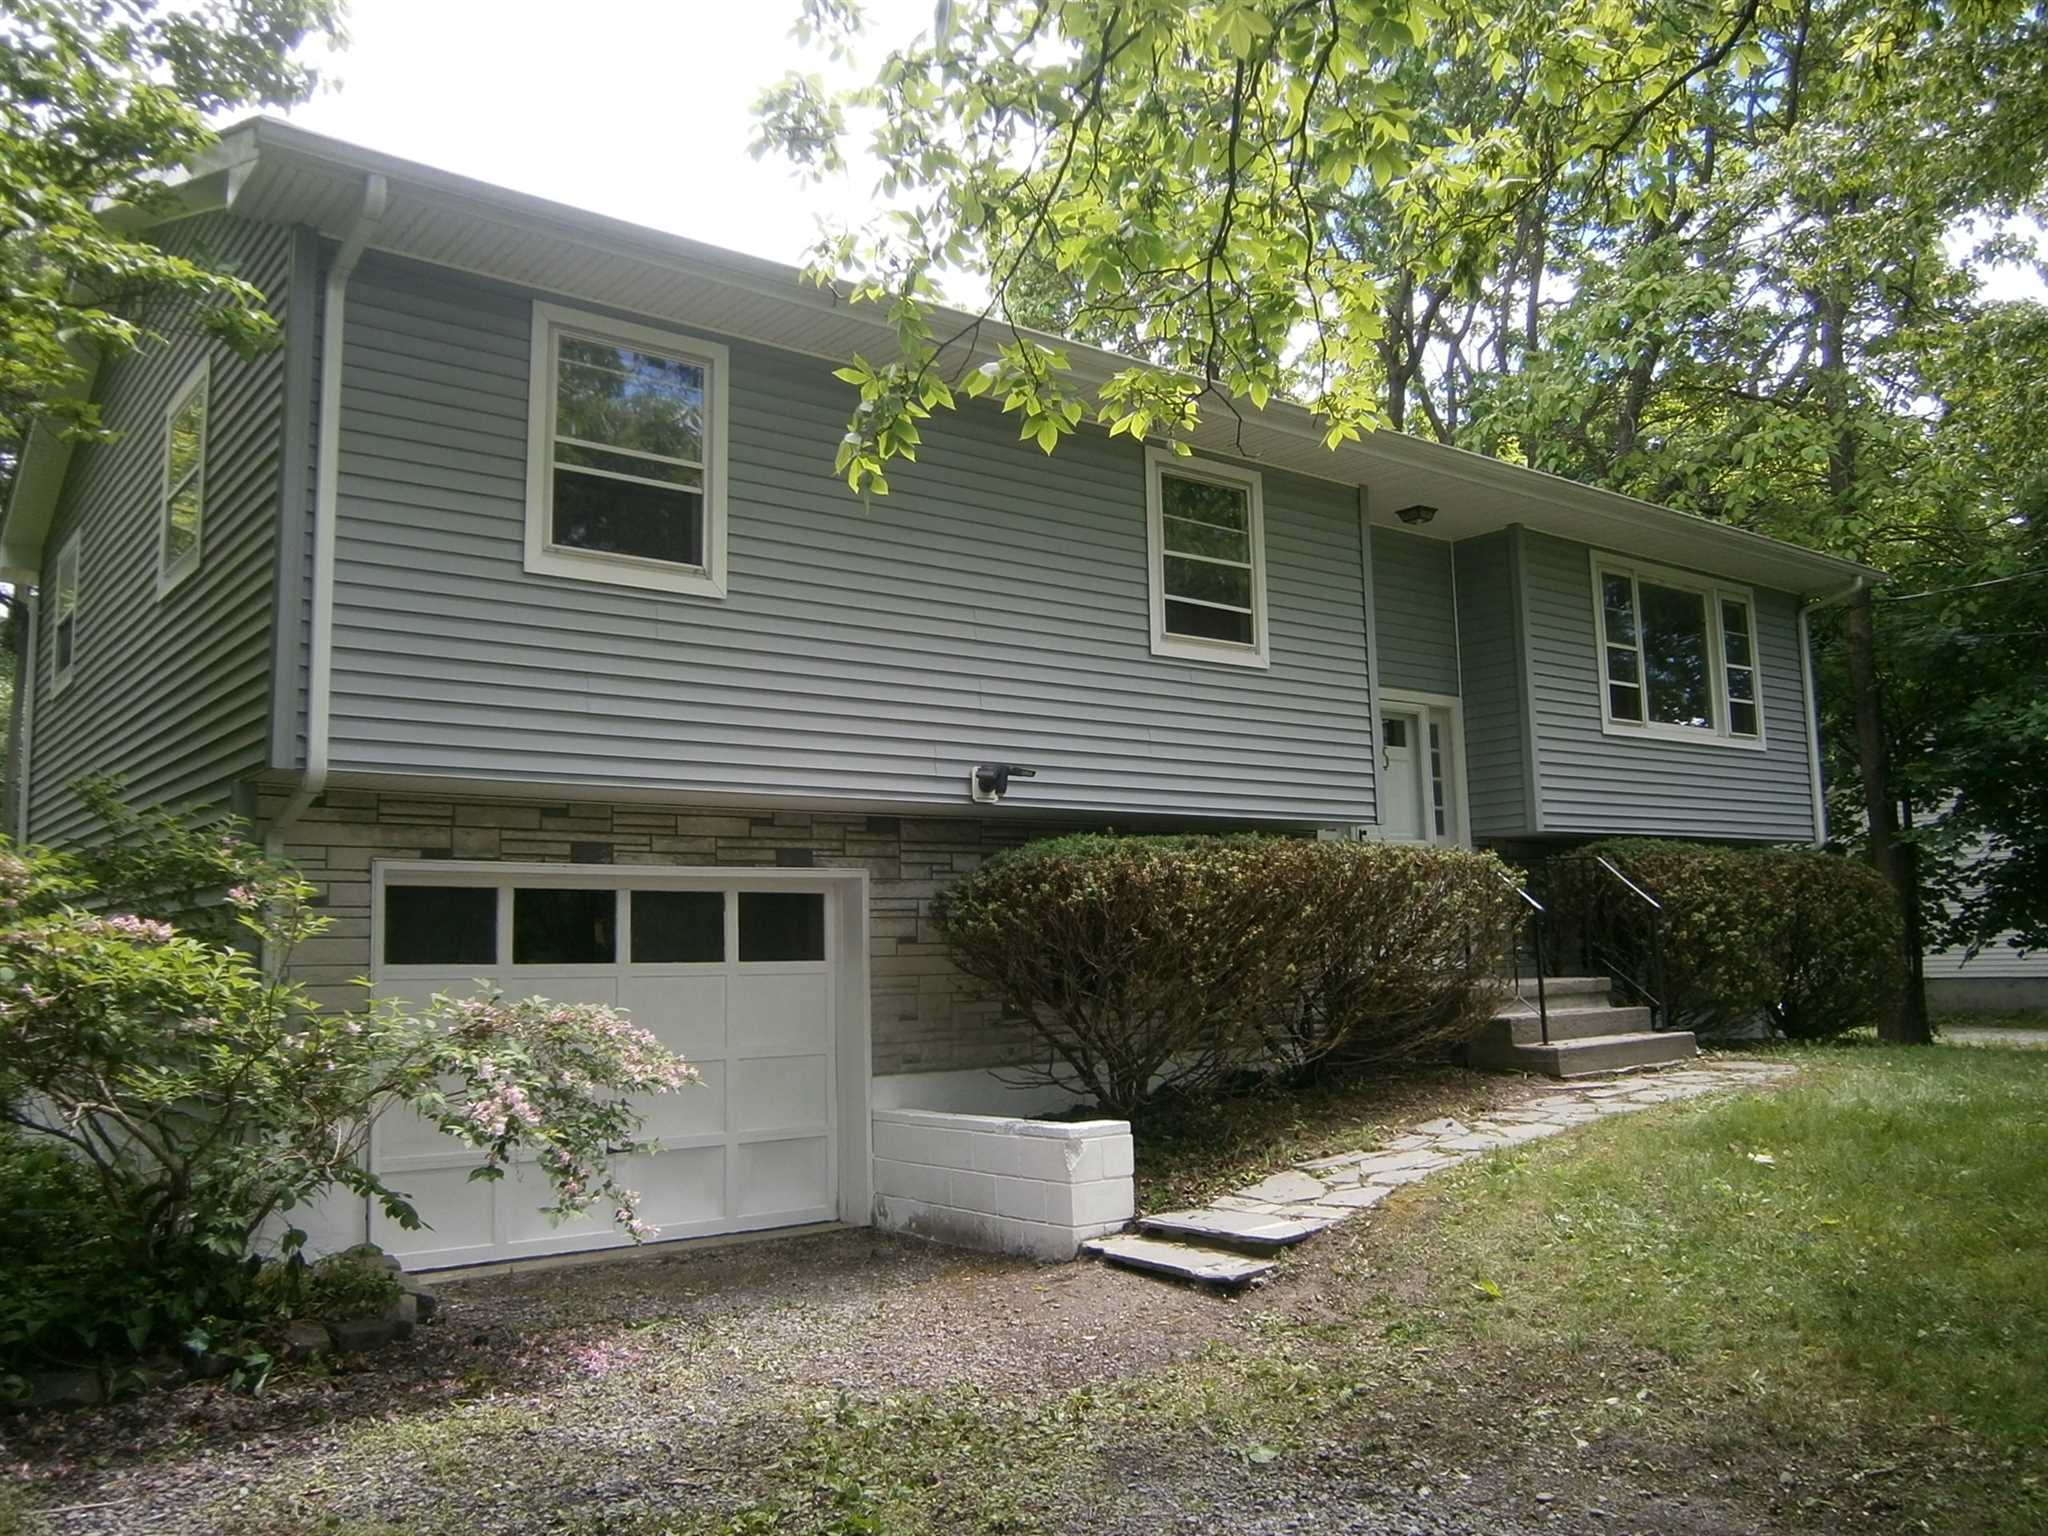 Single Family Home for Sale at 318 ROUTE 32 318 ROUTE 32 New Paltz, New York 12561 United States